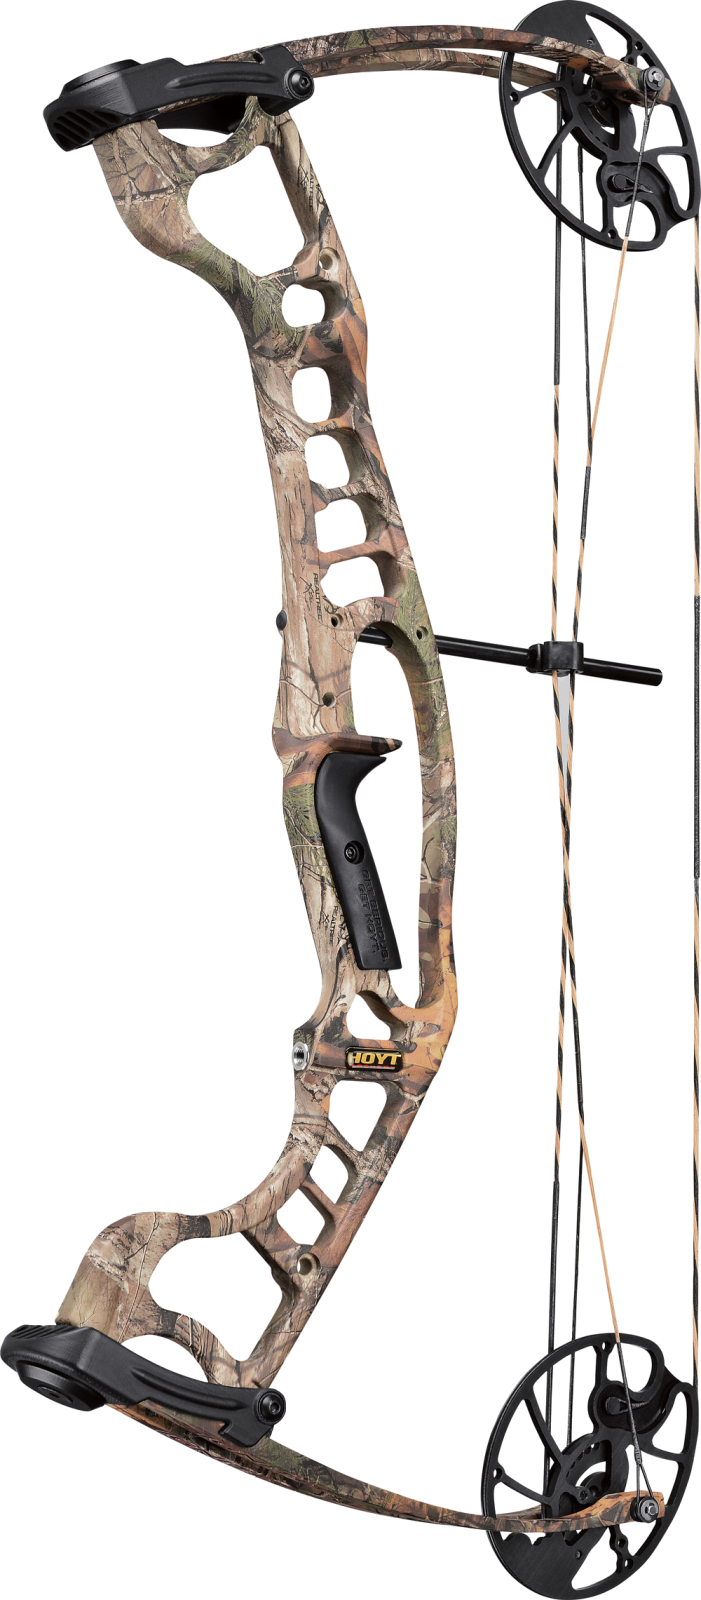 The Hoyt Ignite is a versatile bow, ideal for a growing youth archer because the draw length and draw weight are adjustable. A growing youngster will be able to shoot this bow into adulthood (Photo Provided)